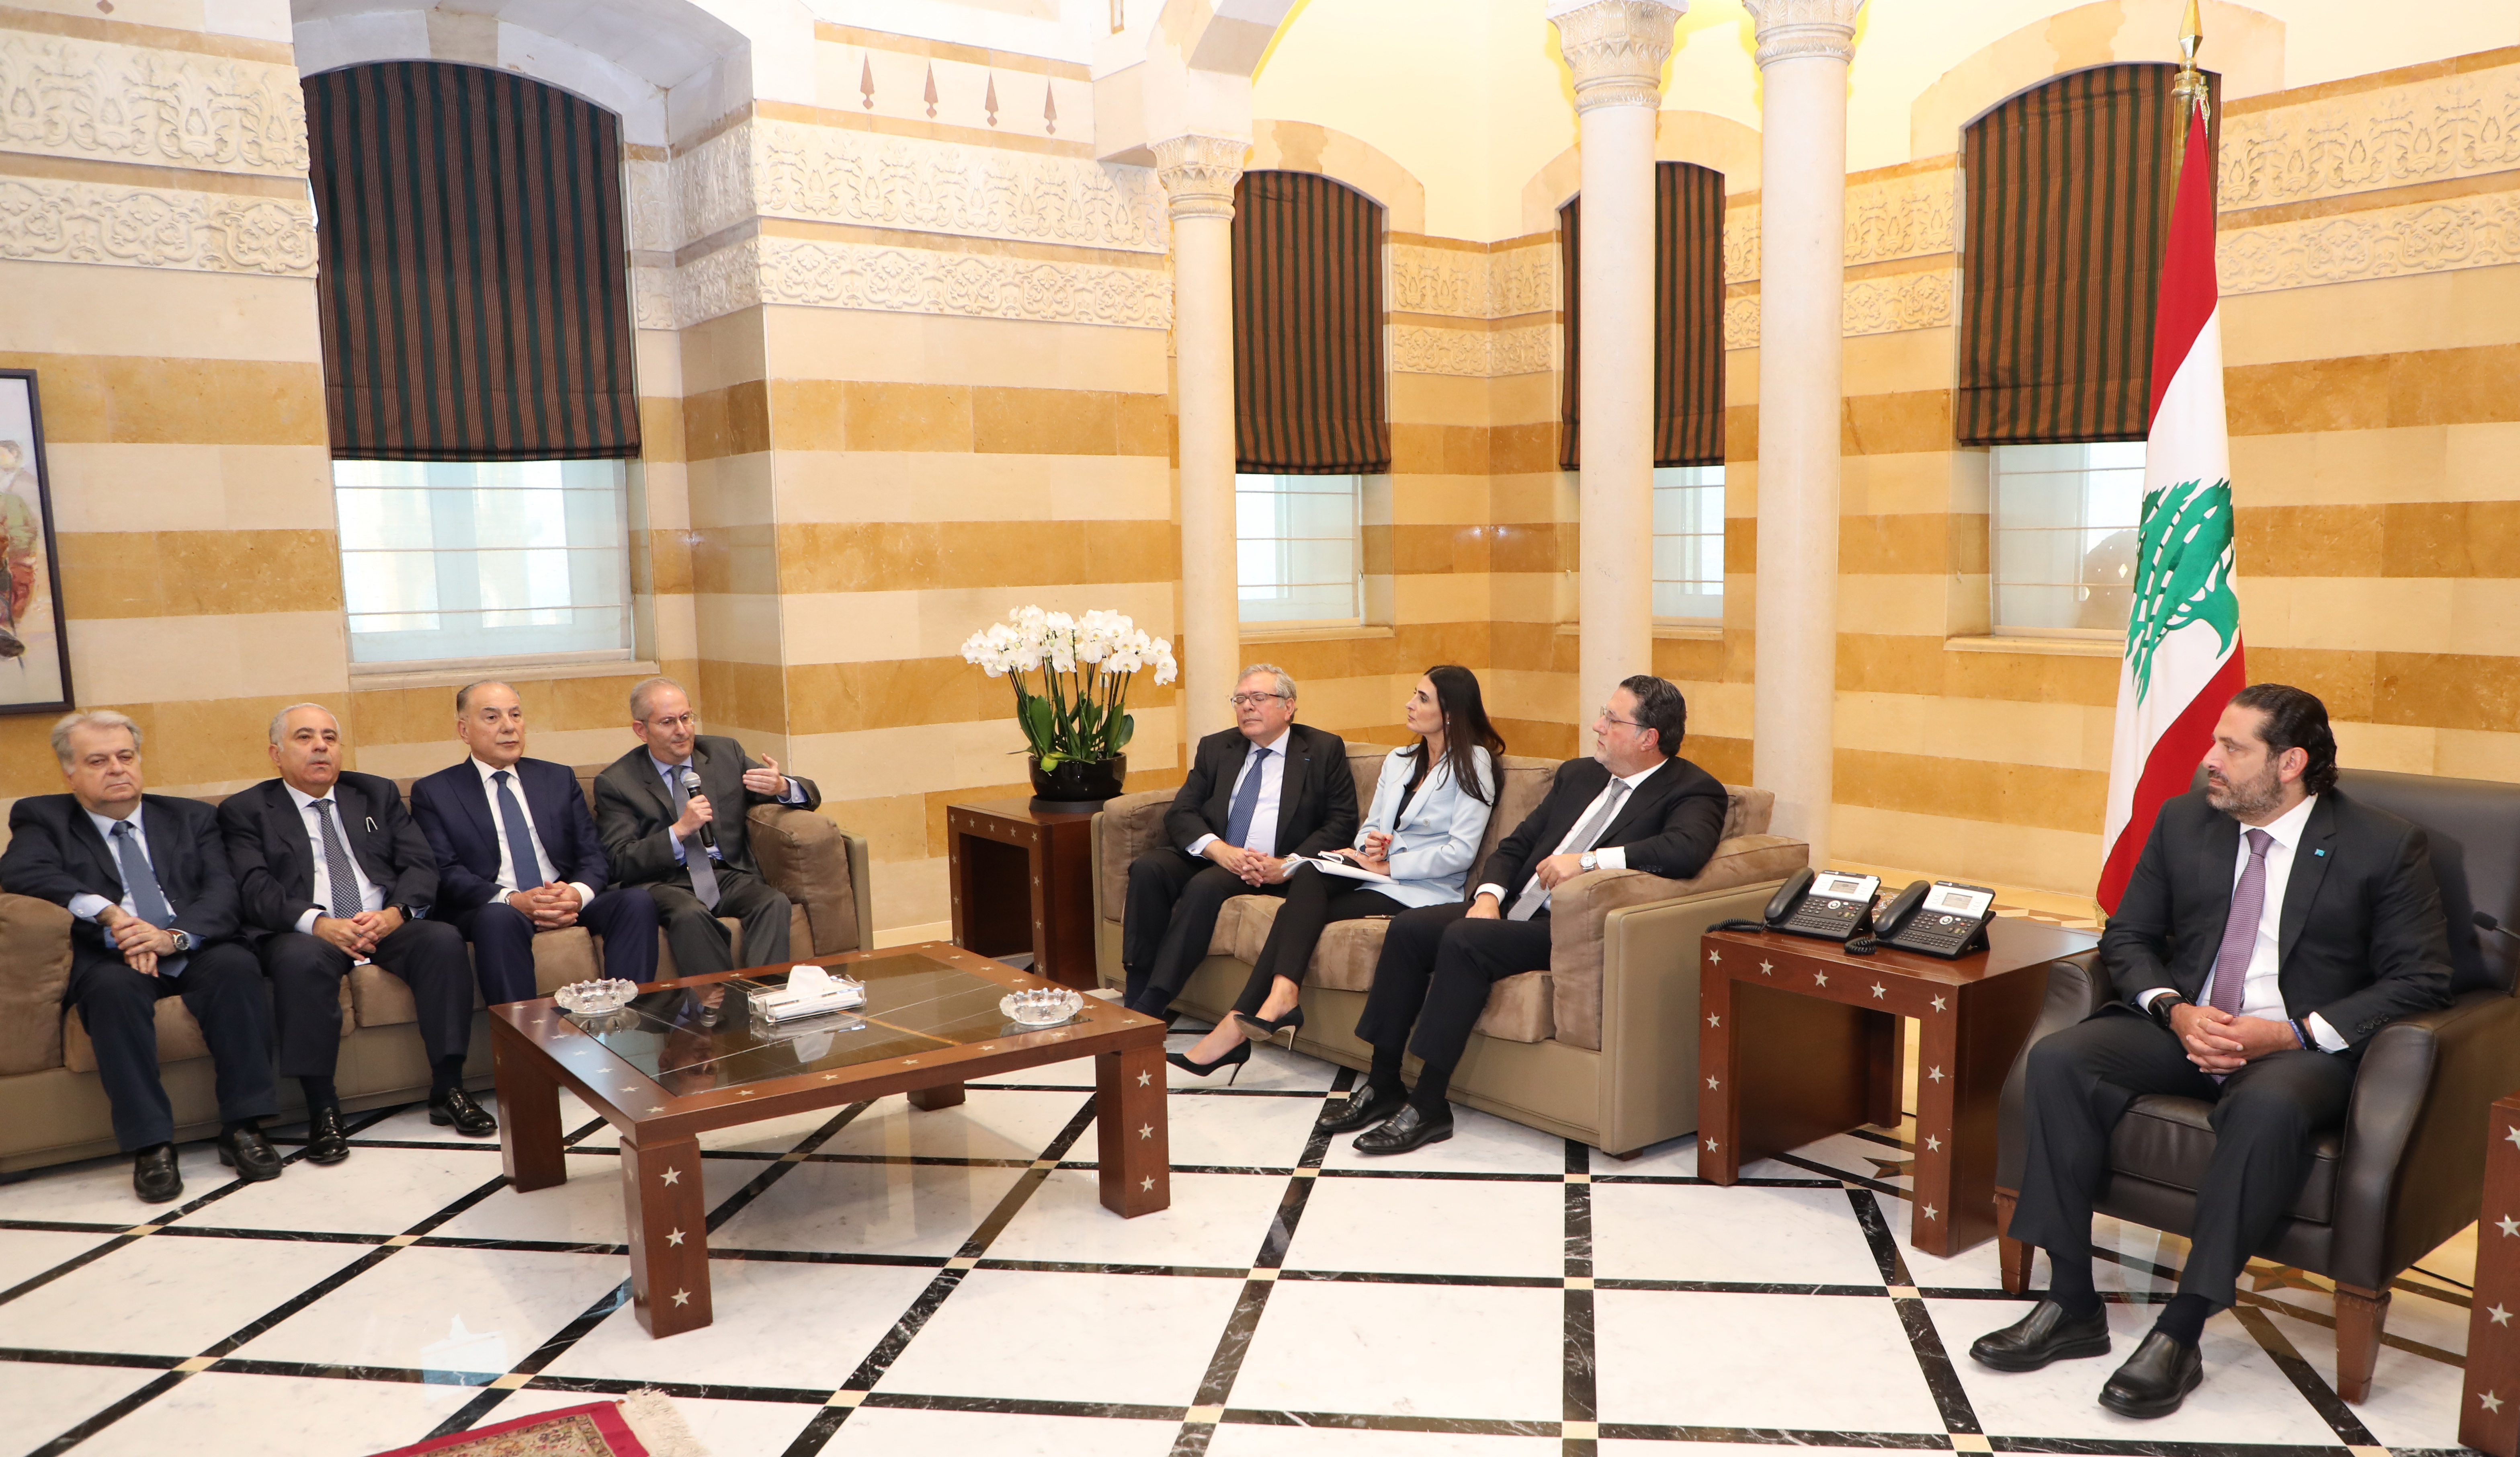 Pr Minister Saad Hariri meets a Minister Mouhamad Choukair with a Delegation 1